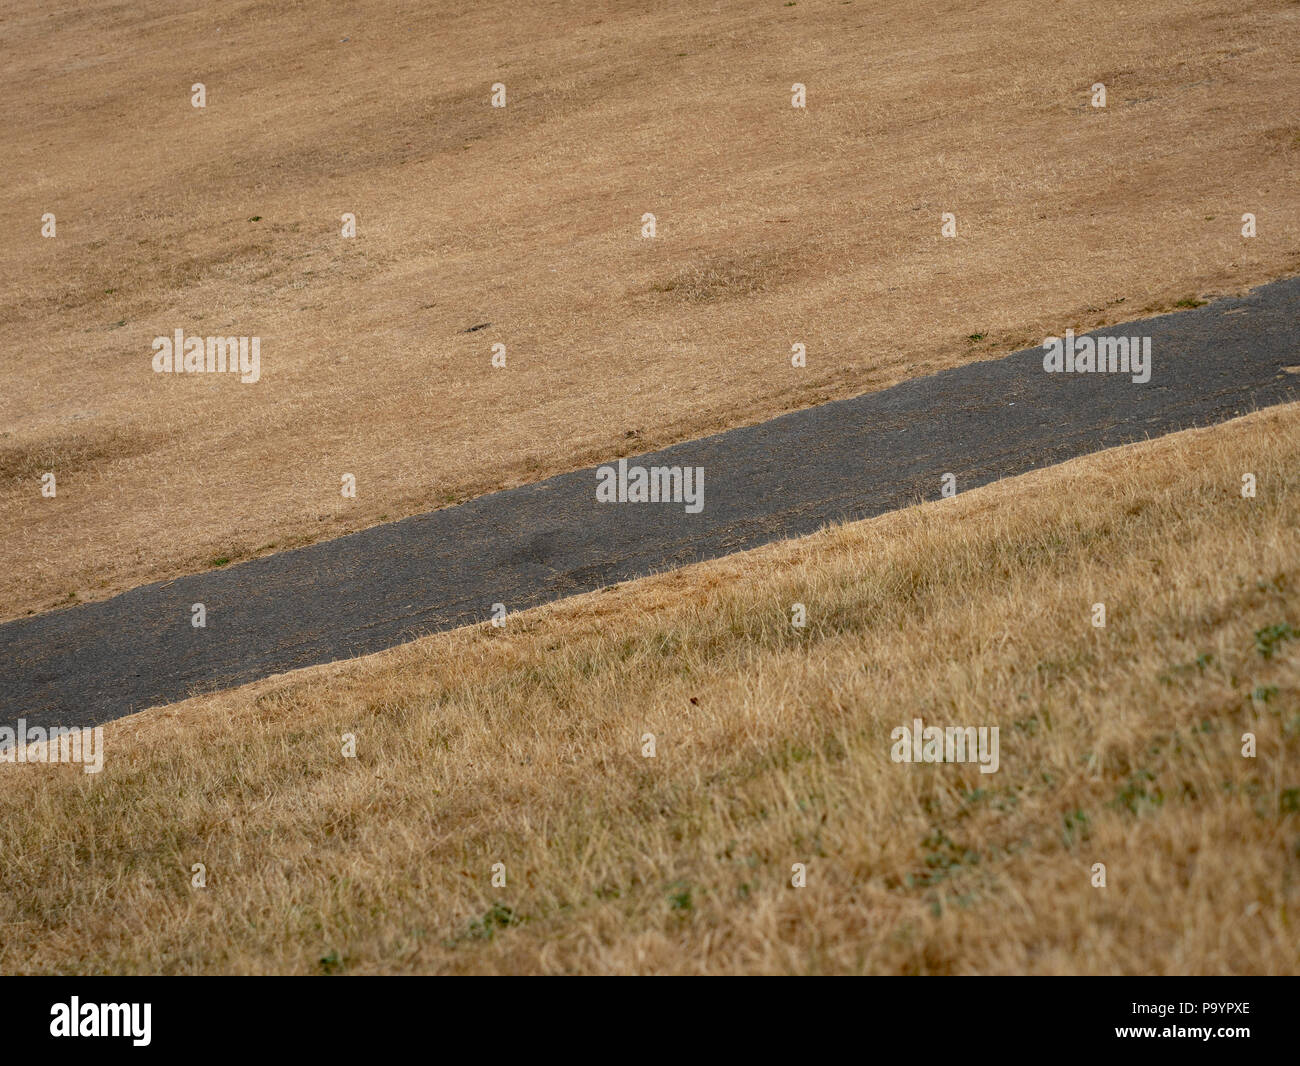 Dry brown grass field in a public park due to extreme hot weather - Stock Image